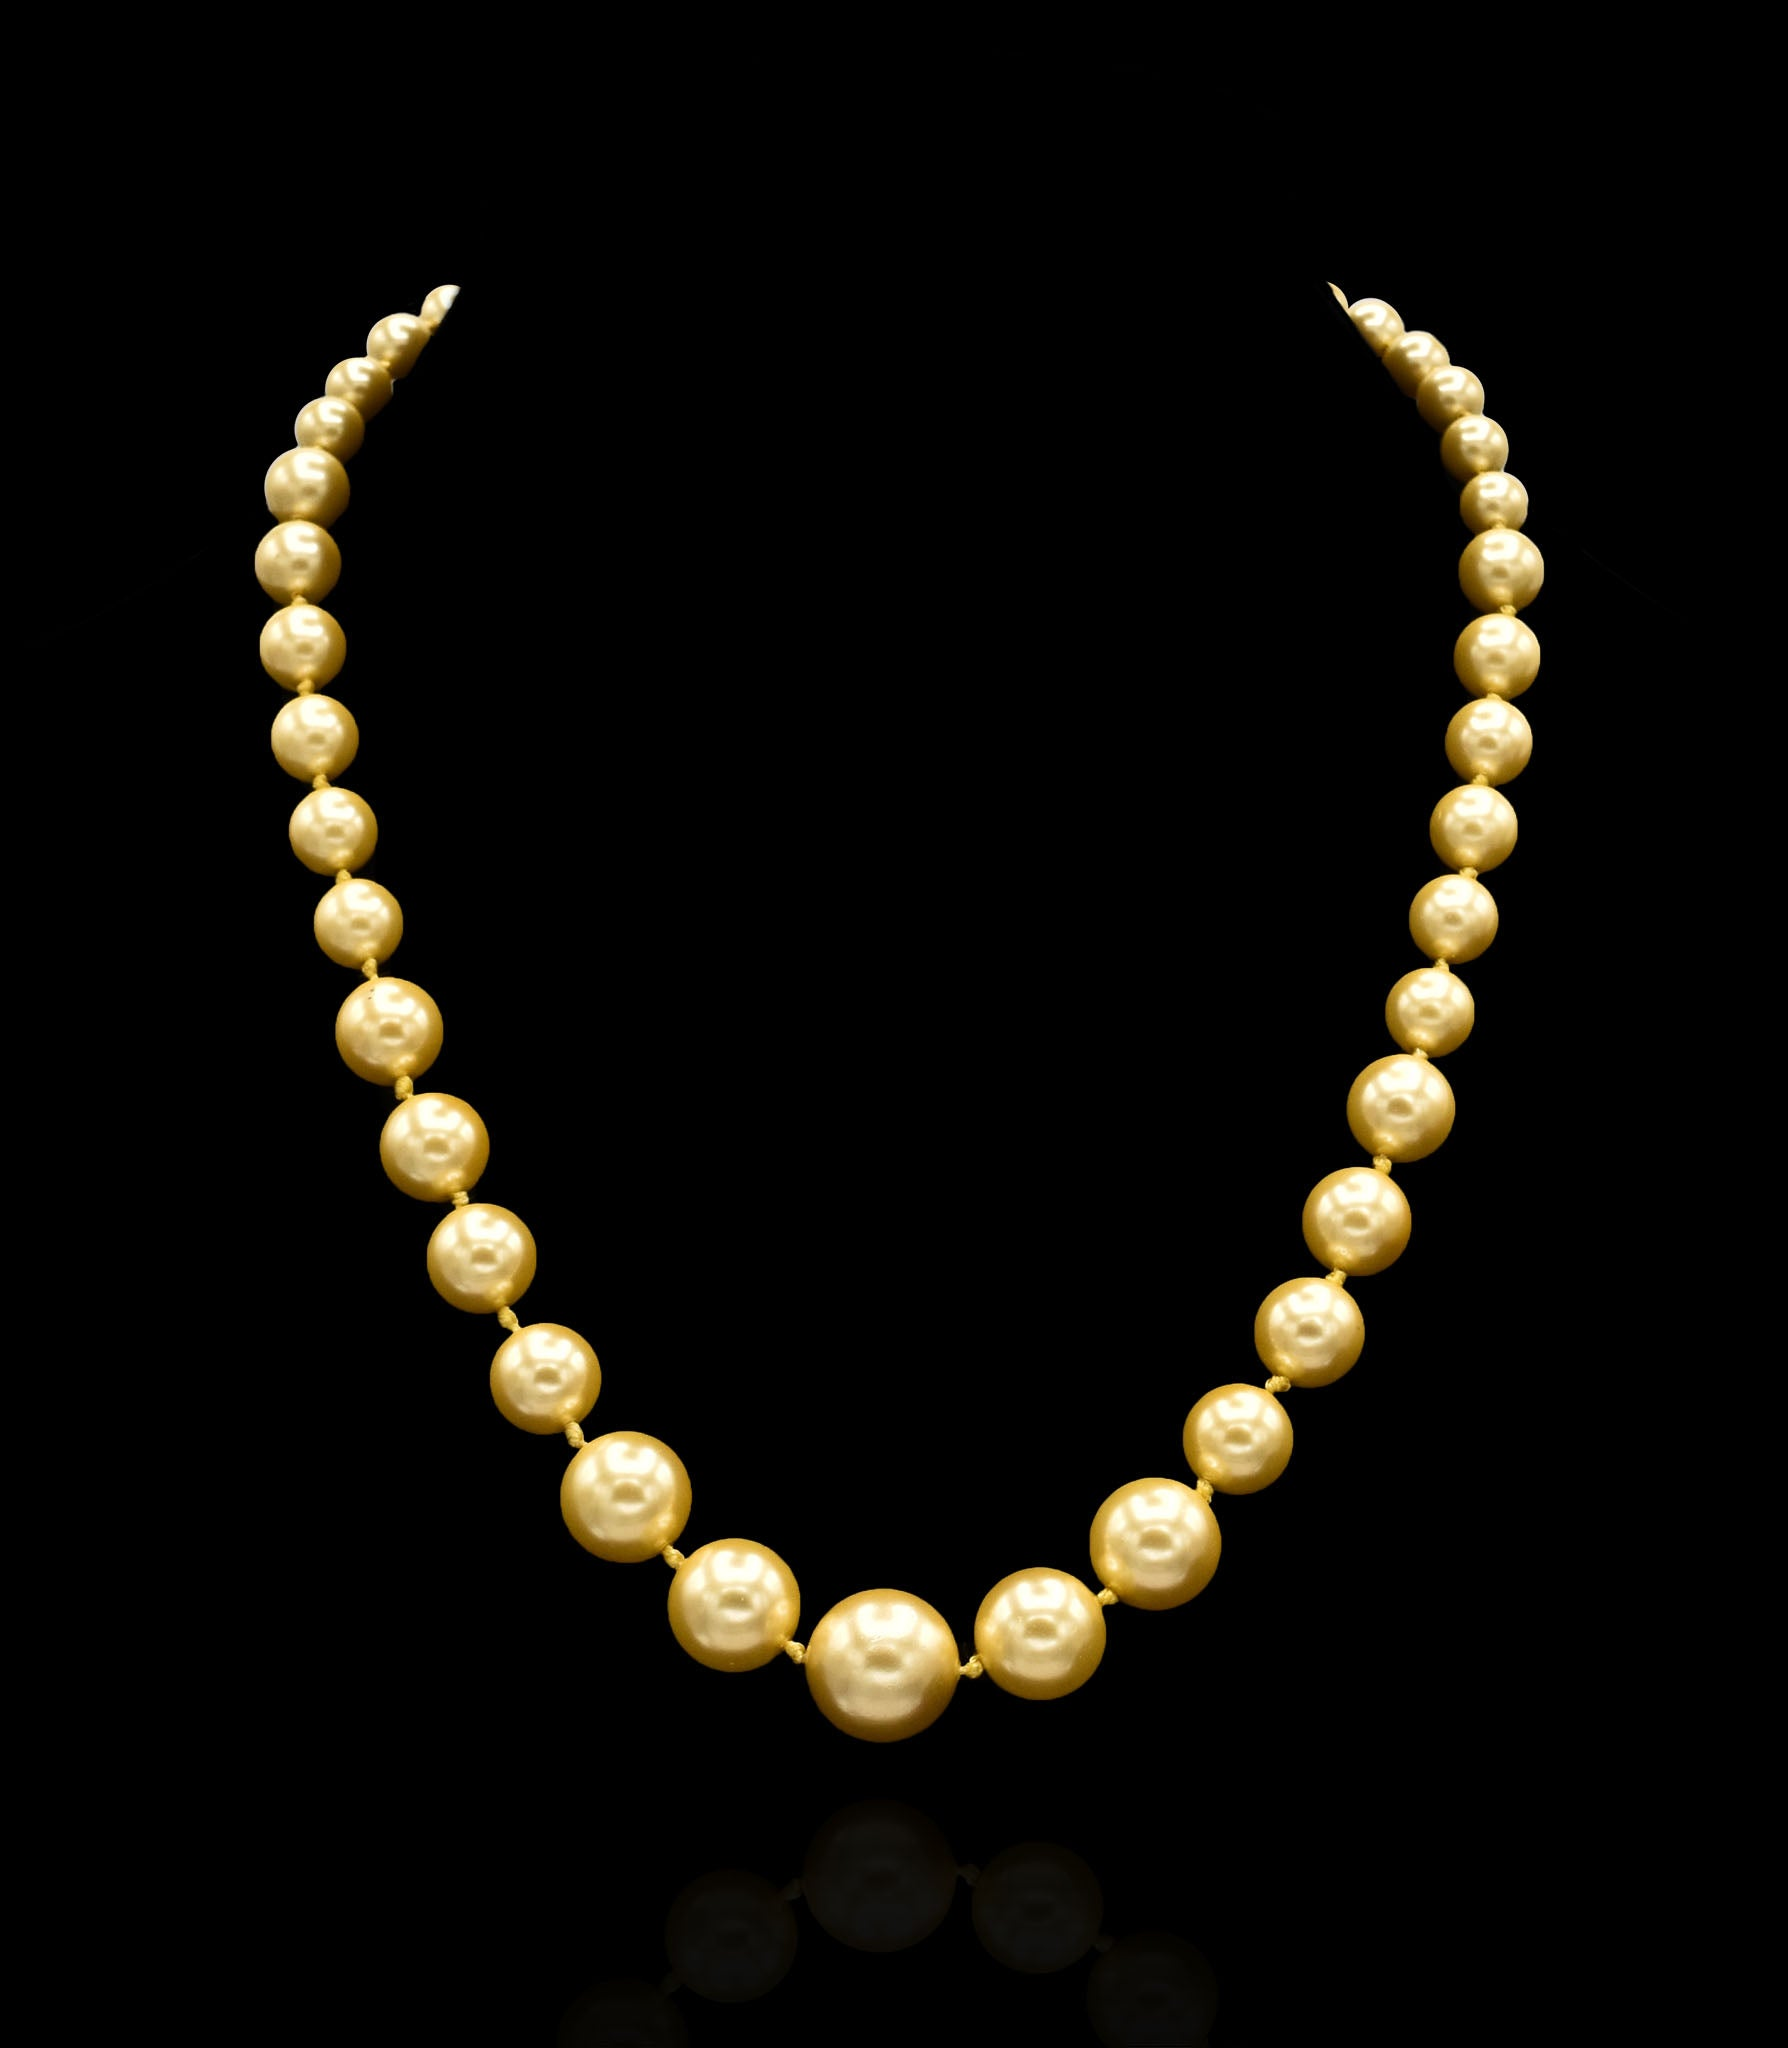 Leona Pearl Necklace - Golden - The Pashm